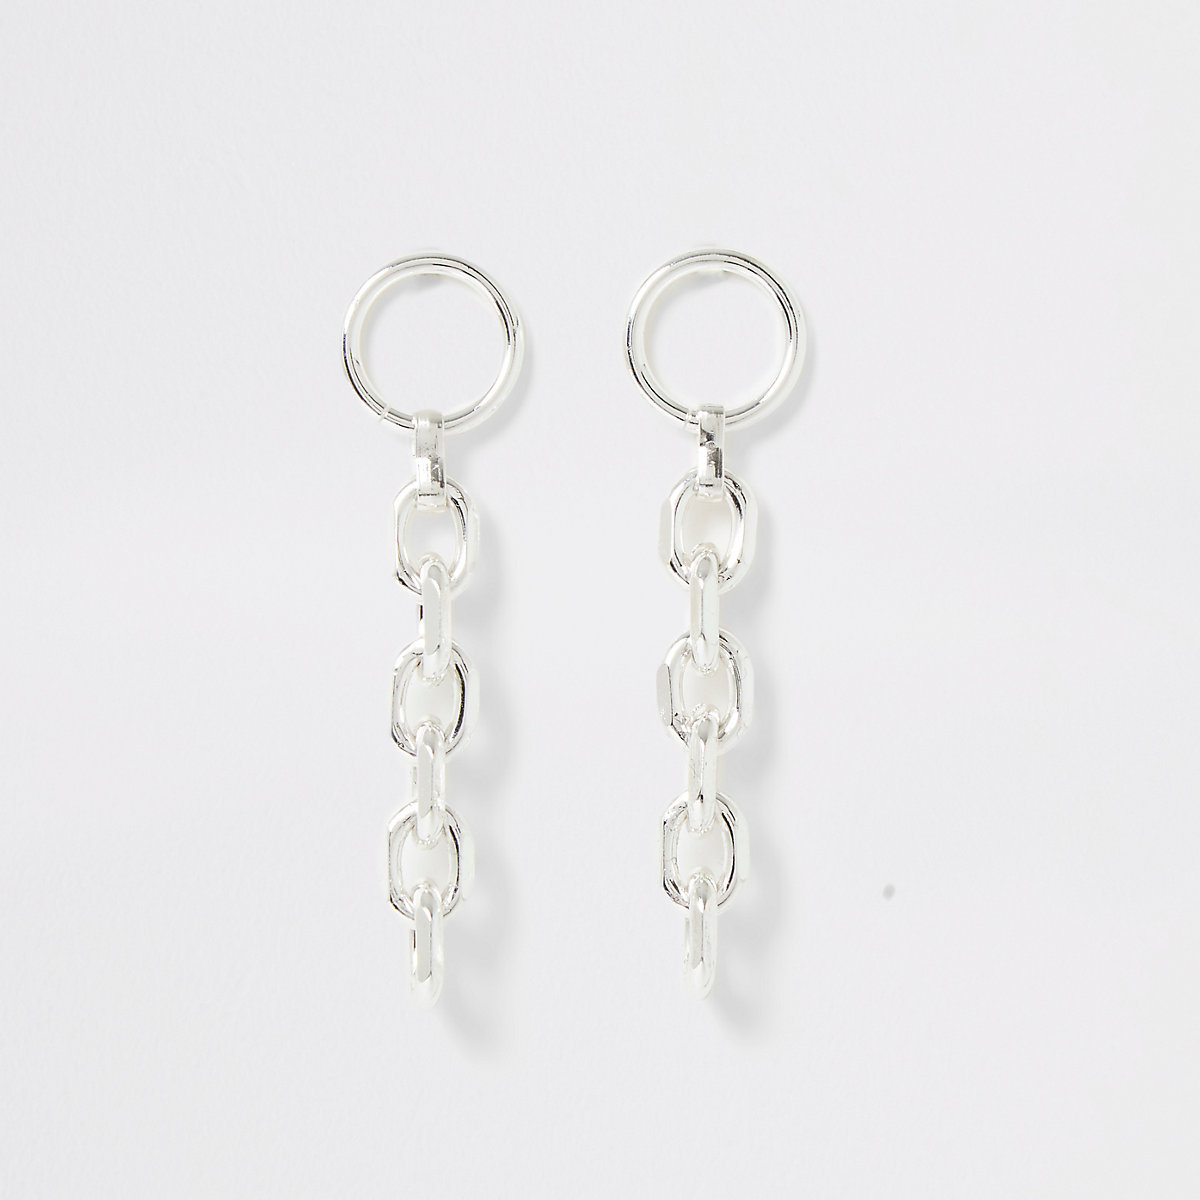 Silver color chain drop earrings